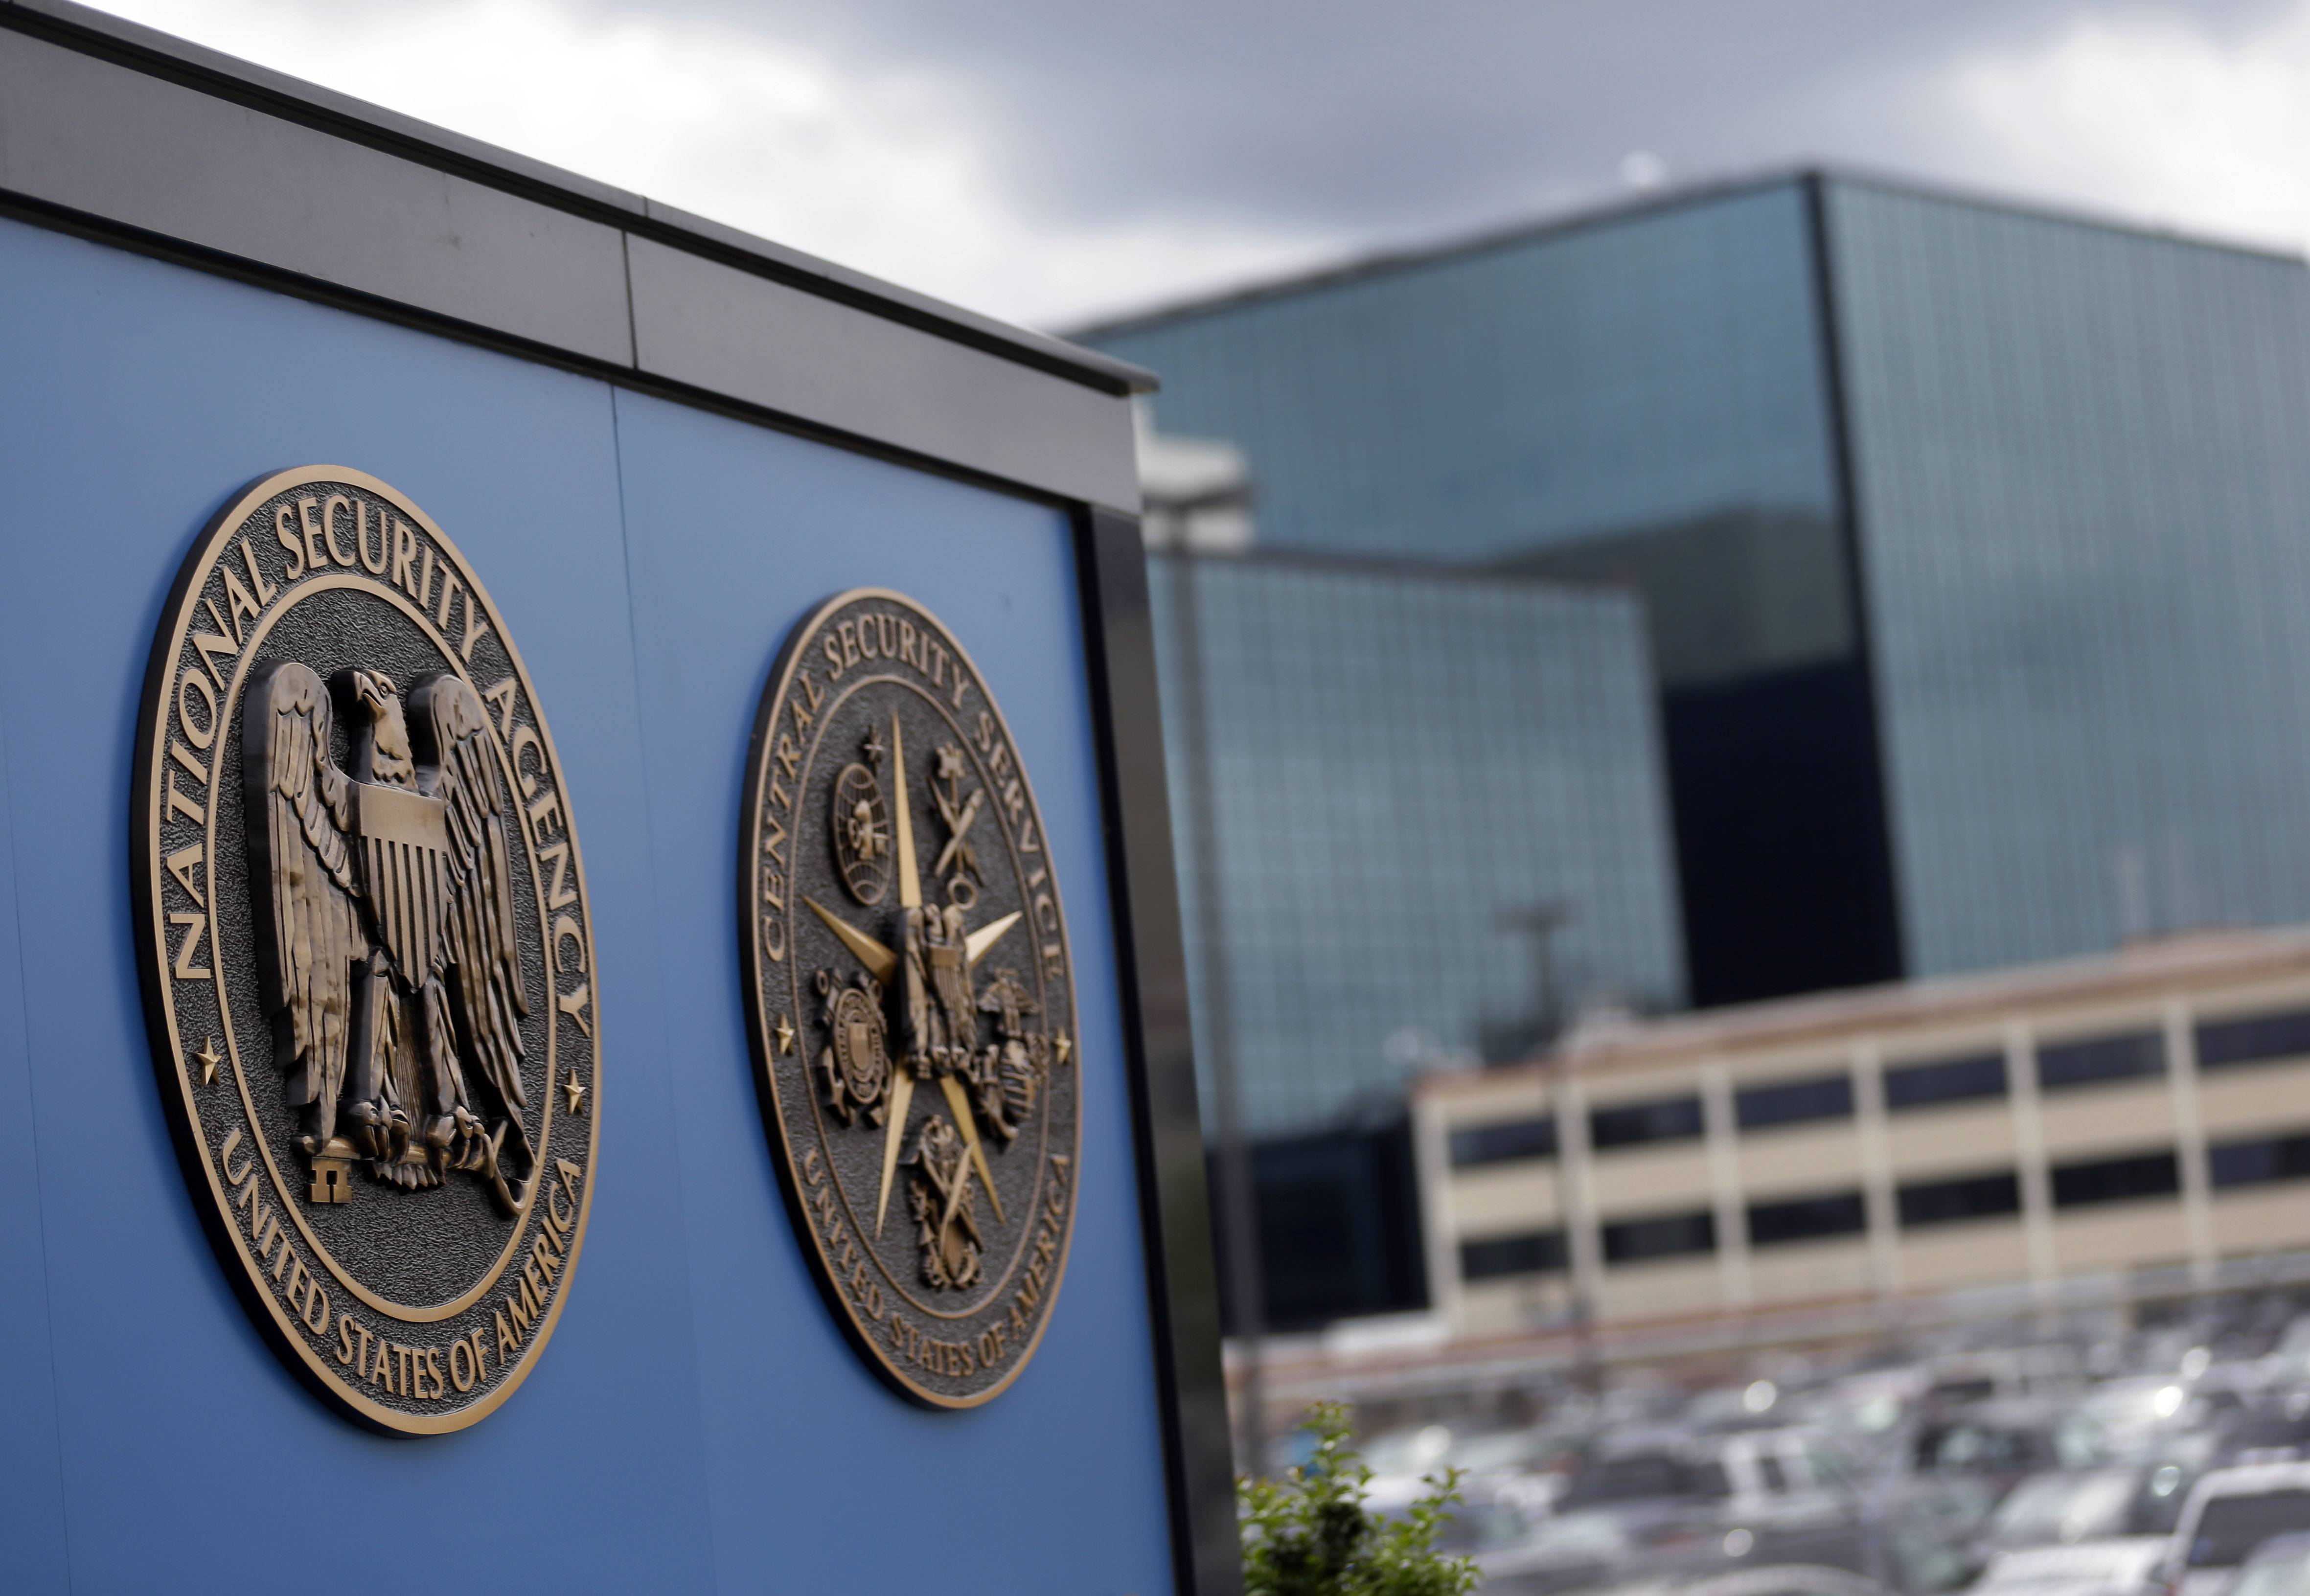 In this June 6, 2013, file photo, shows plaques outside the National Security Agency (NSA) campus in Fort Meade, Md. When the NSA intercepted the online accounts of legally targeted foreigners over a four-year period it also collected the conversations of nine times as many ordinary Internet users, both Americans and non-Americans, according to an investigation by The Washington Post.